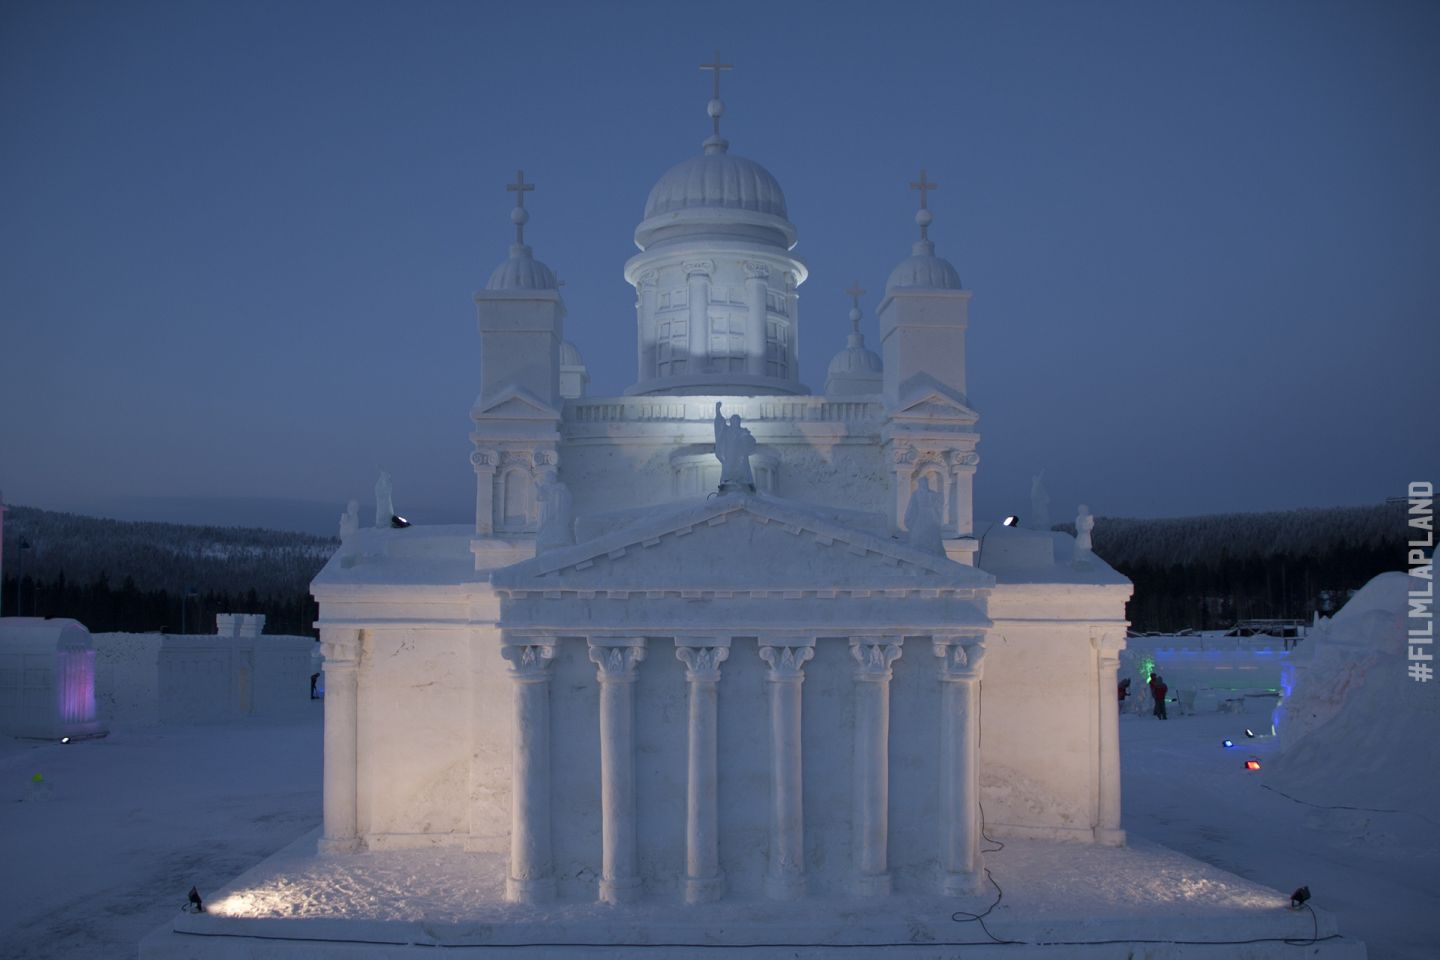 Ice sculpture of Helsinki Cathedral in Levi, Kittilä